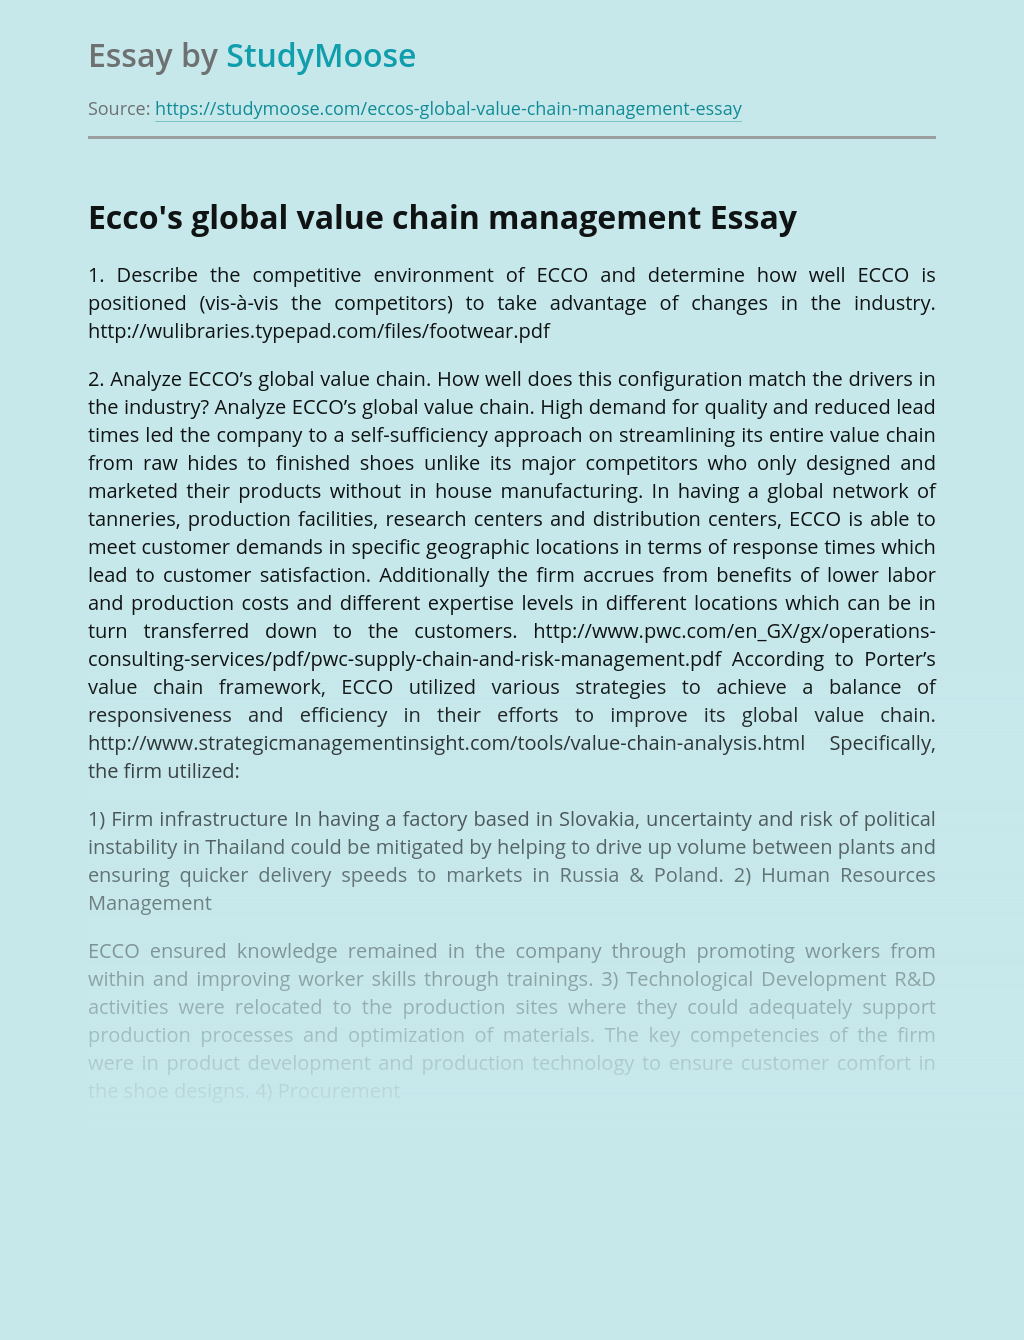 The competitive environment of ECCO